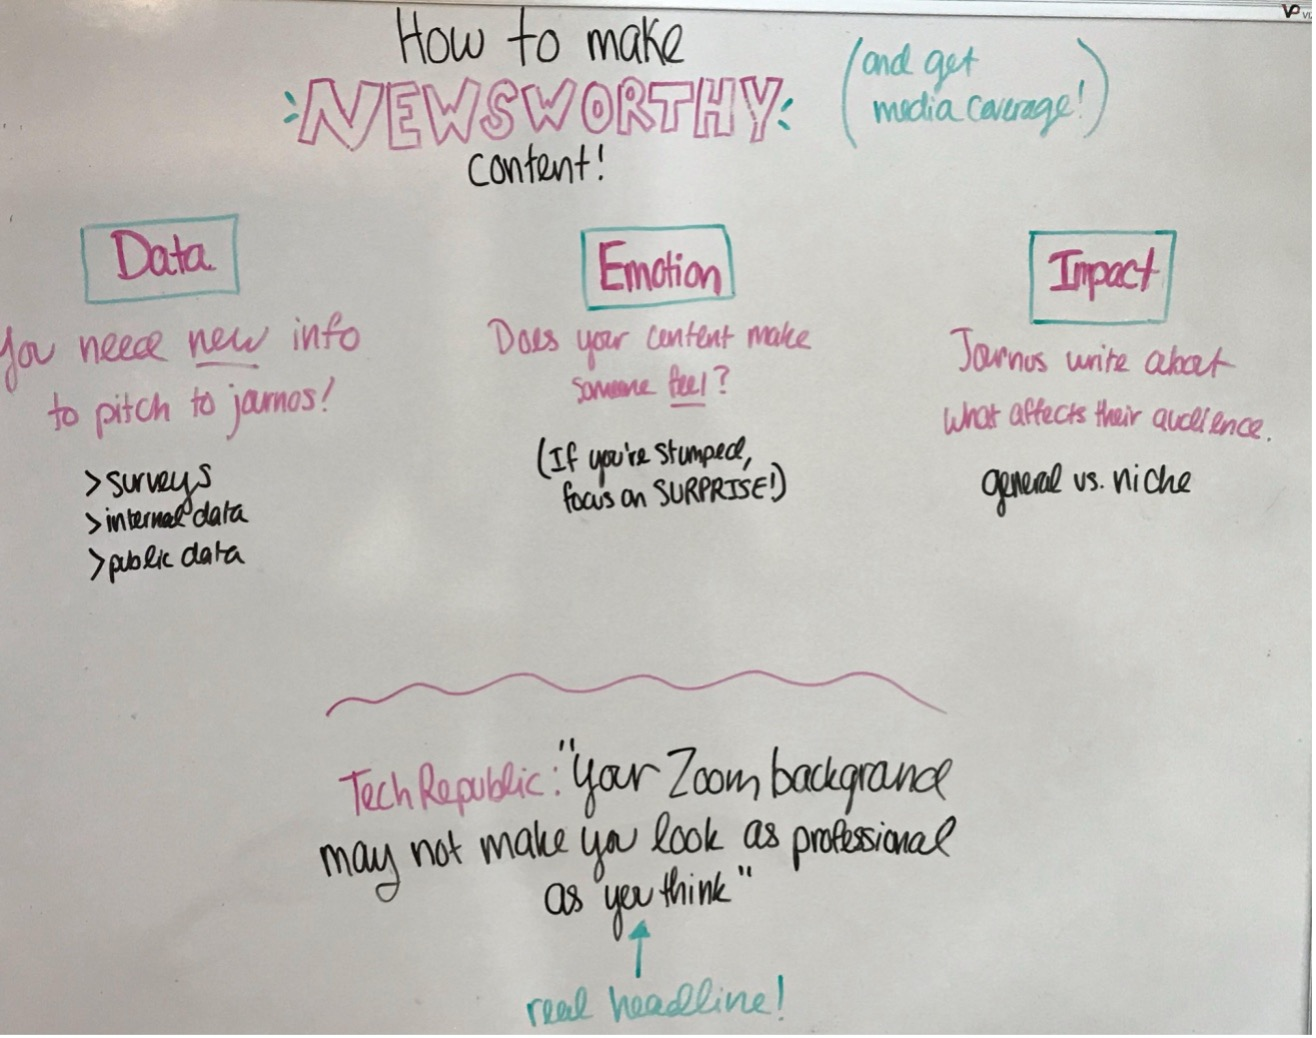 Rising to the challenge of creating newsworthy content on a whiteboard (diagram)